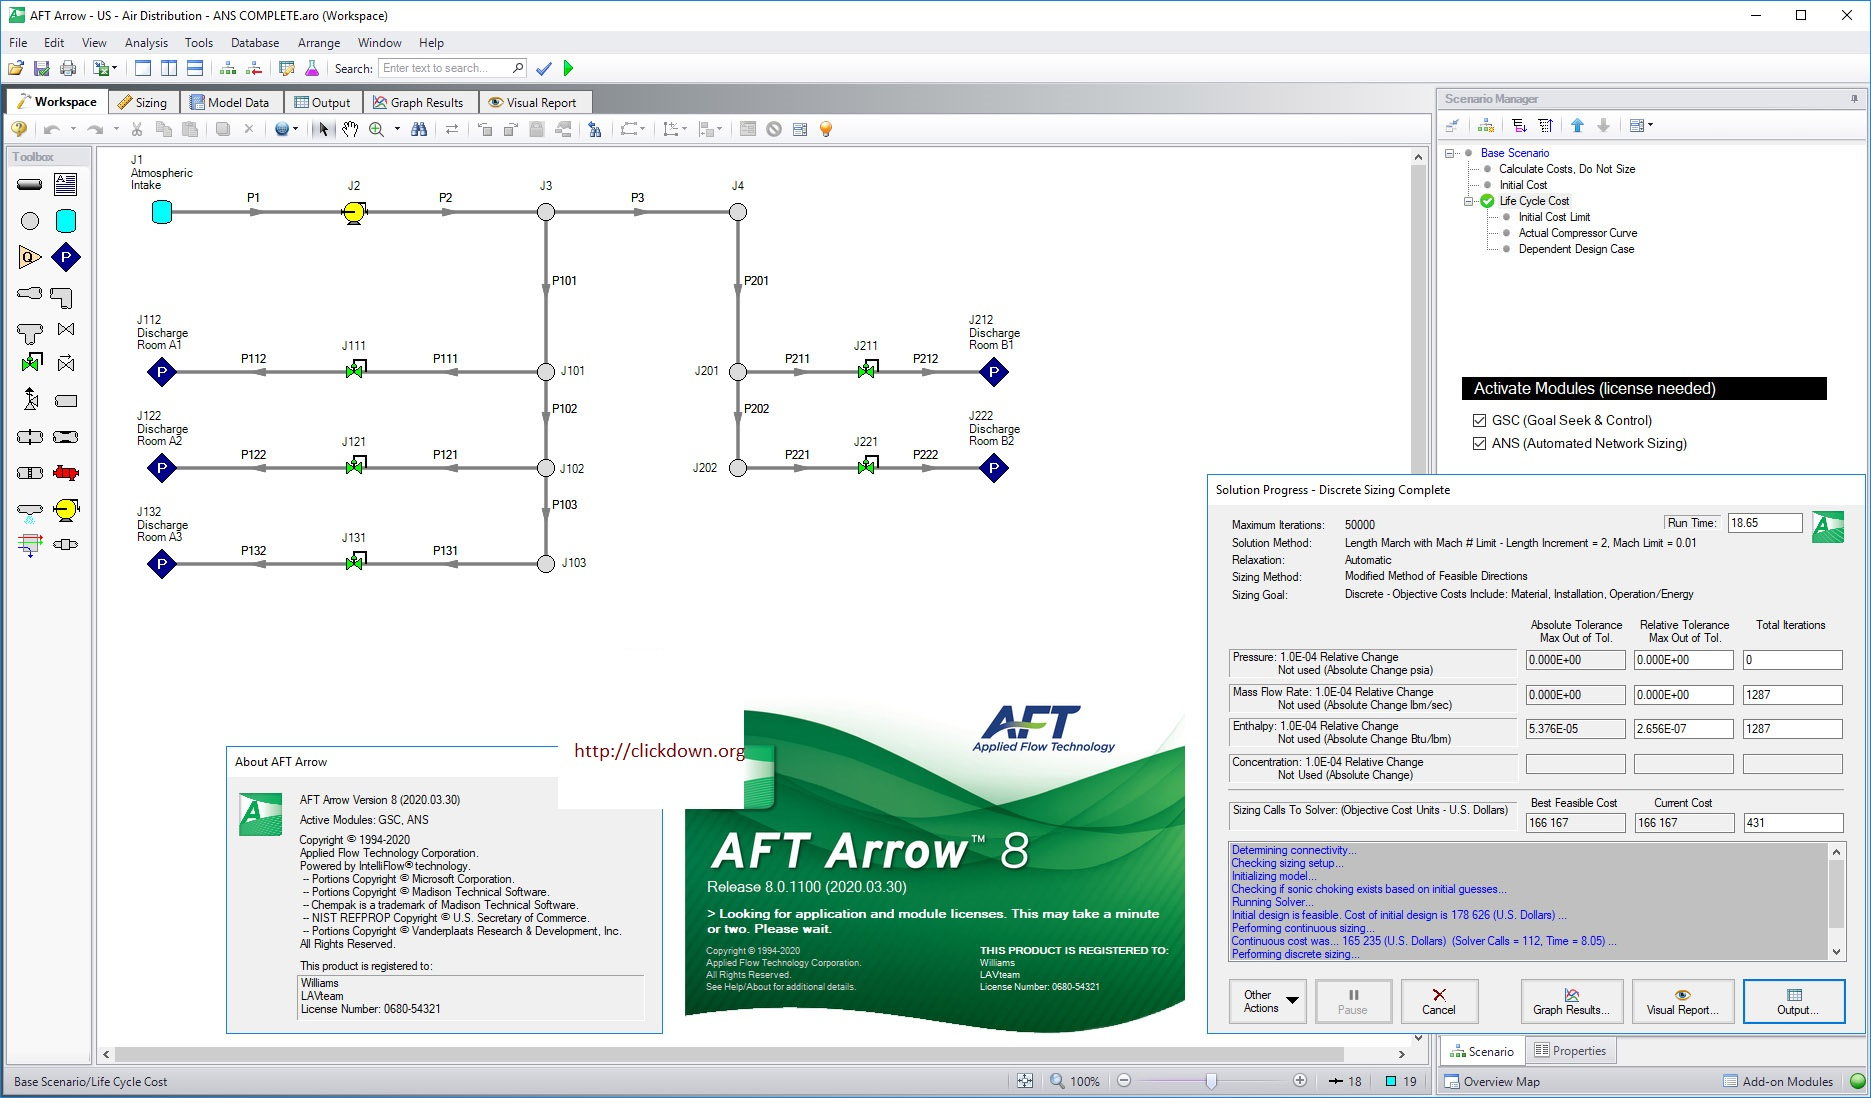 Working with AFT Arrow 8.0.1110 Build 2020.03.30 full license